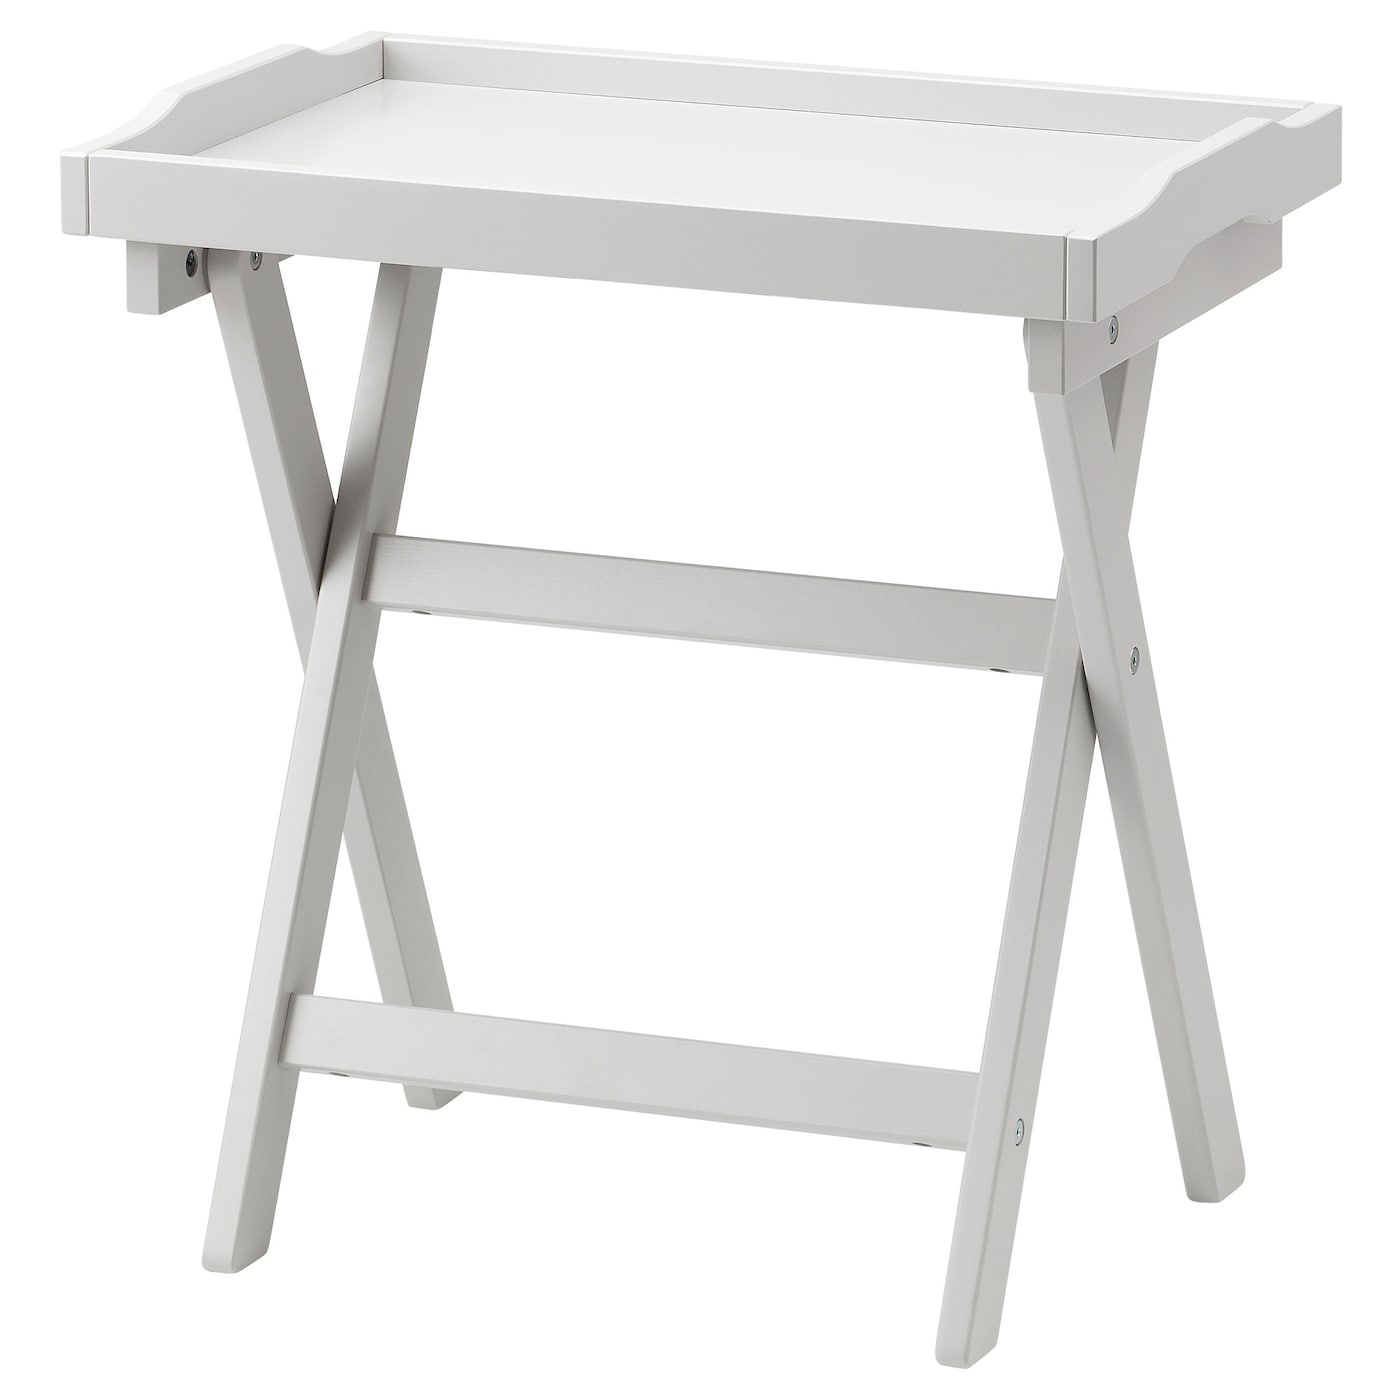 can you put tables essay Table tips by stefanie tables apa style can help you create clean and clear tables put the table at the end after the references and author note but before.